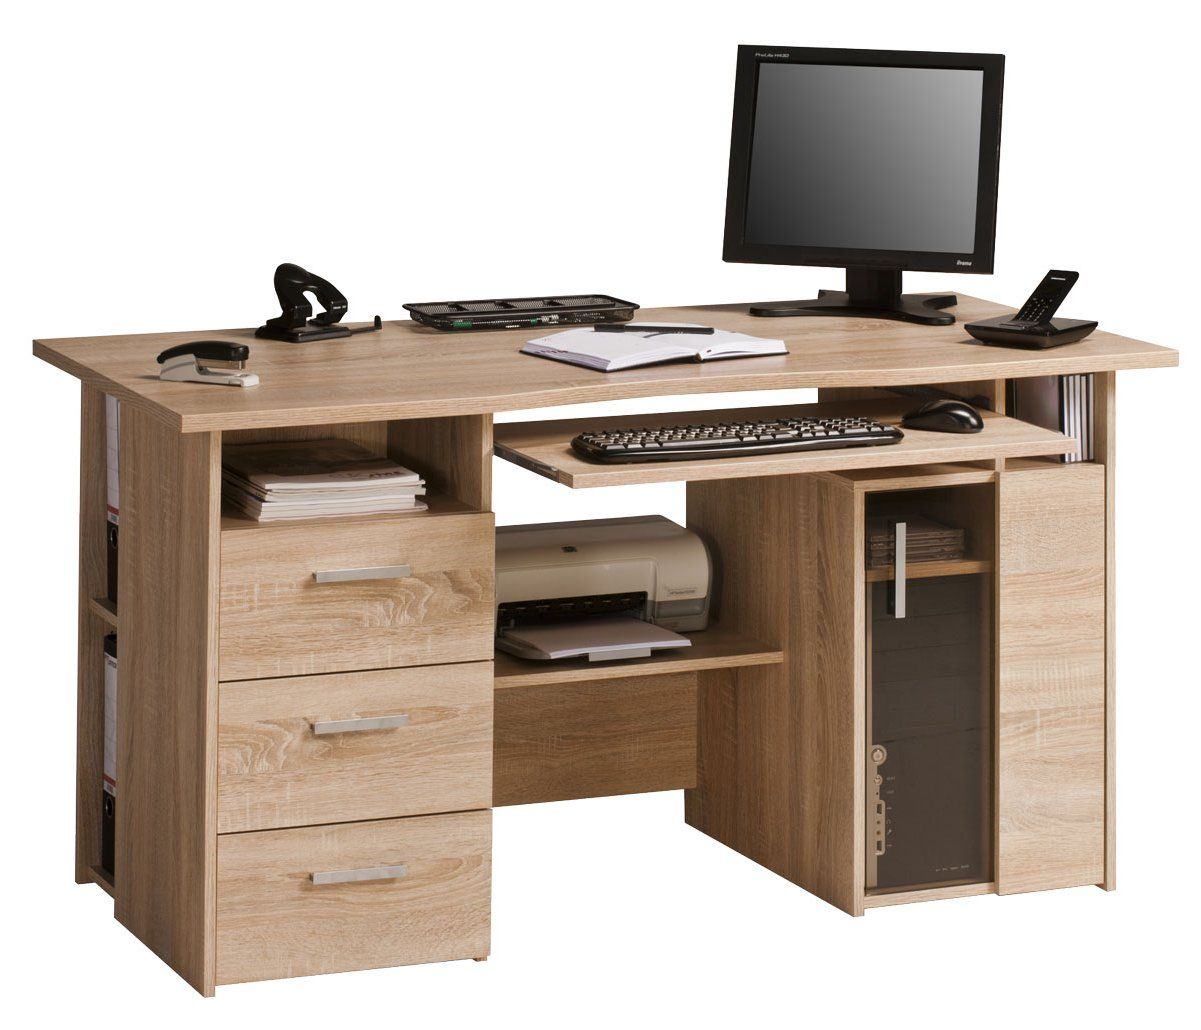 Pc Tisch Ecke 20 Diy Computer Desk Ideas For Making Your Home Office More